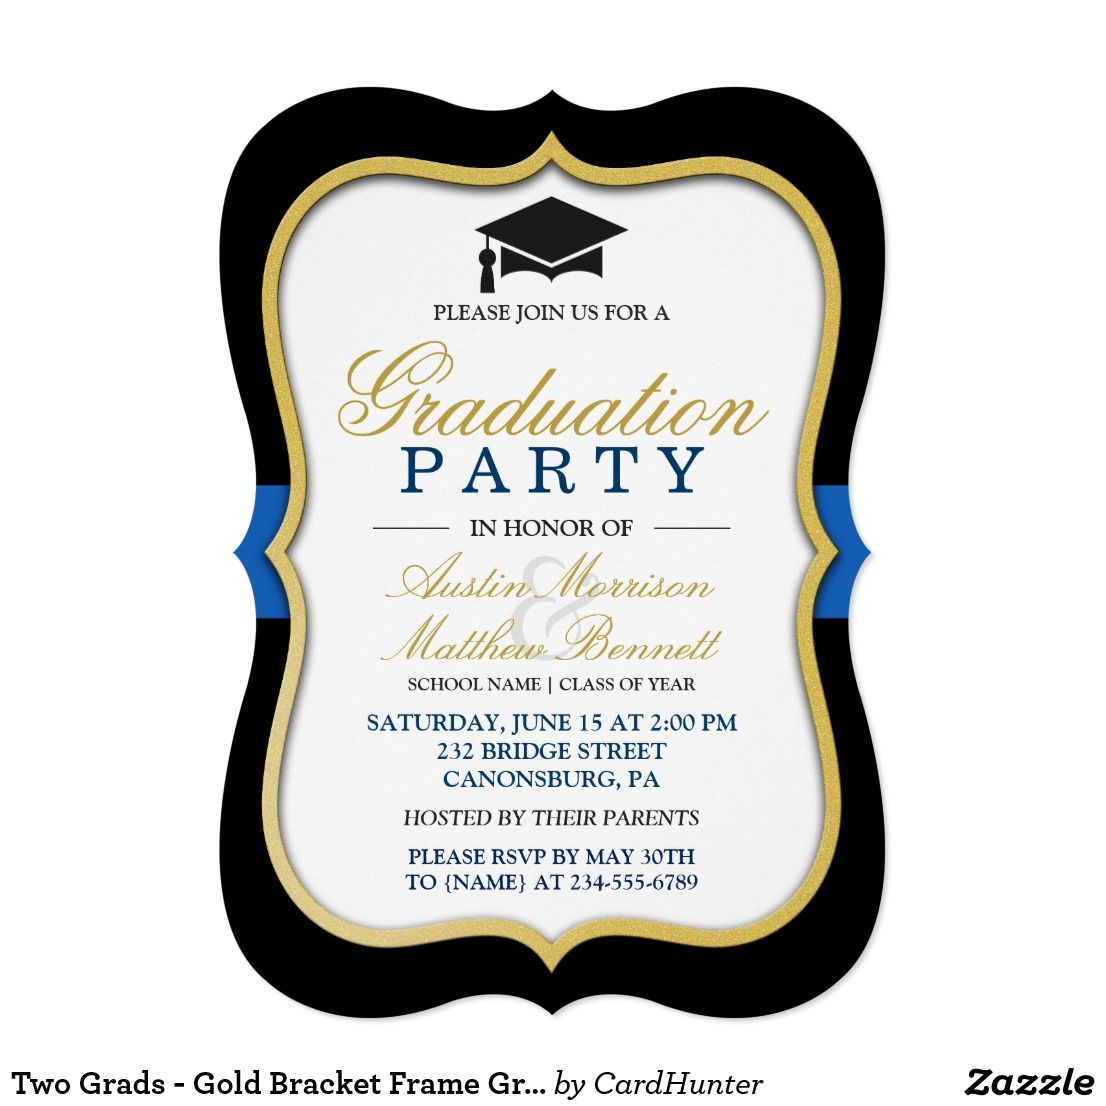 Two Grads - Gold Bracket Frame Graduation Party Card | Party invitations